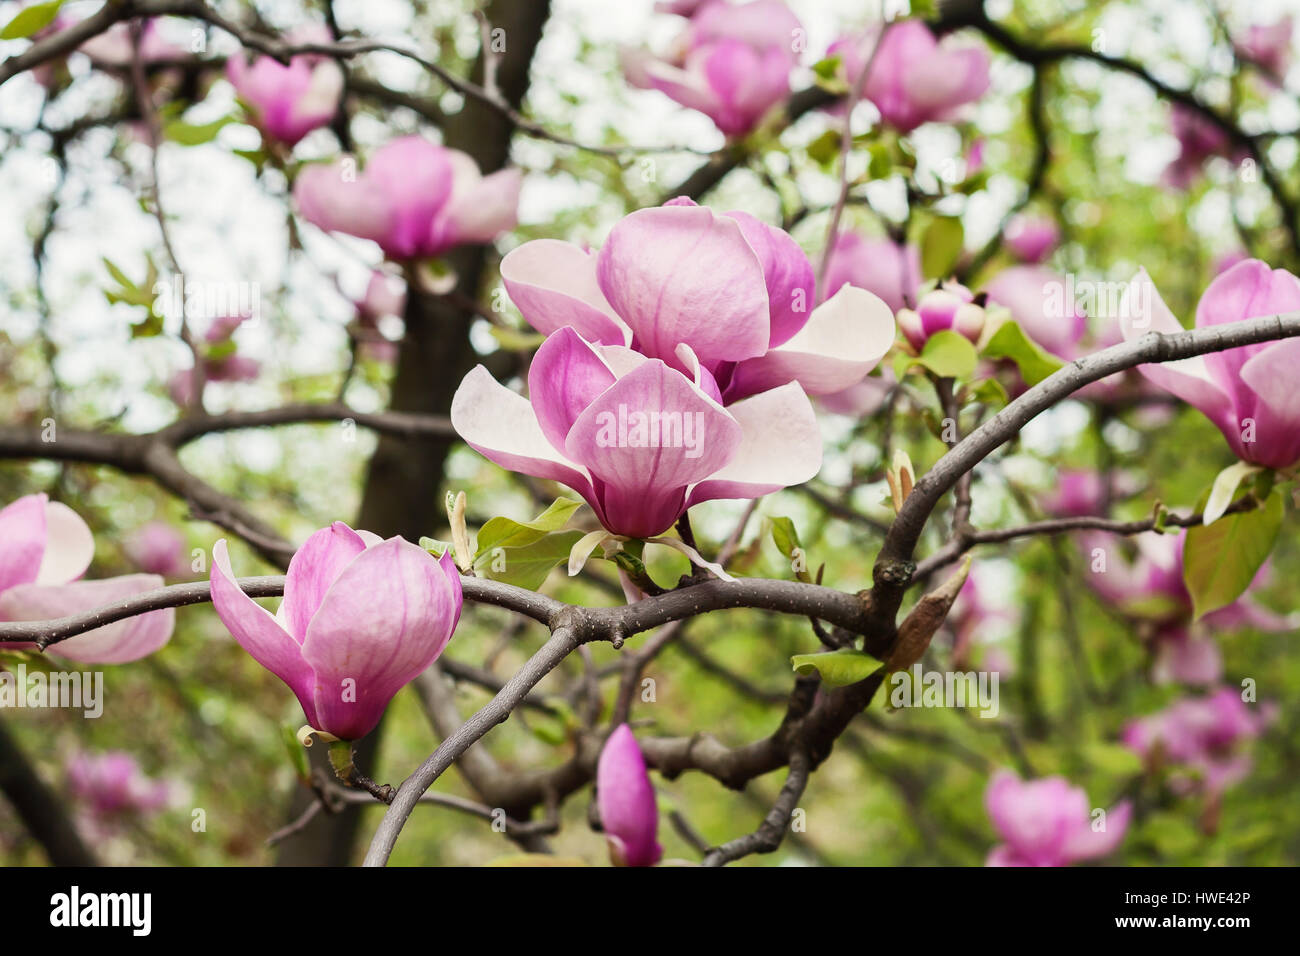 Bloomy Magnolia Tree With Big Pink Flowers Stock Photo Royalty Free